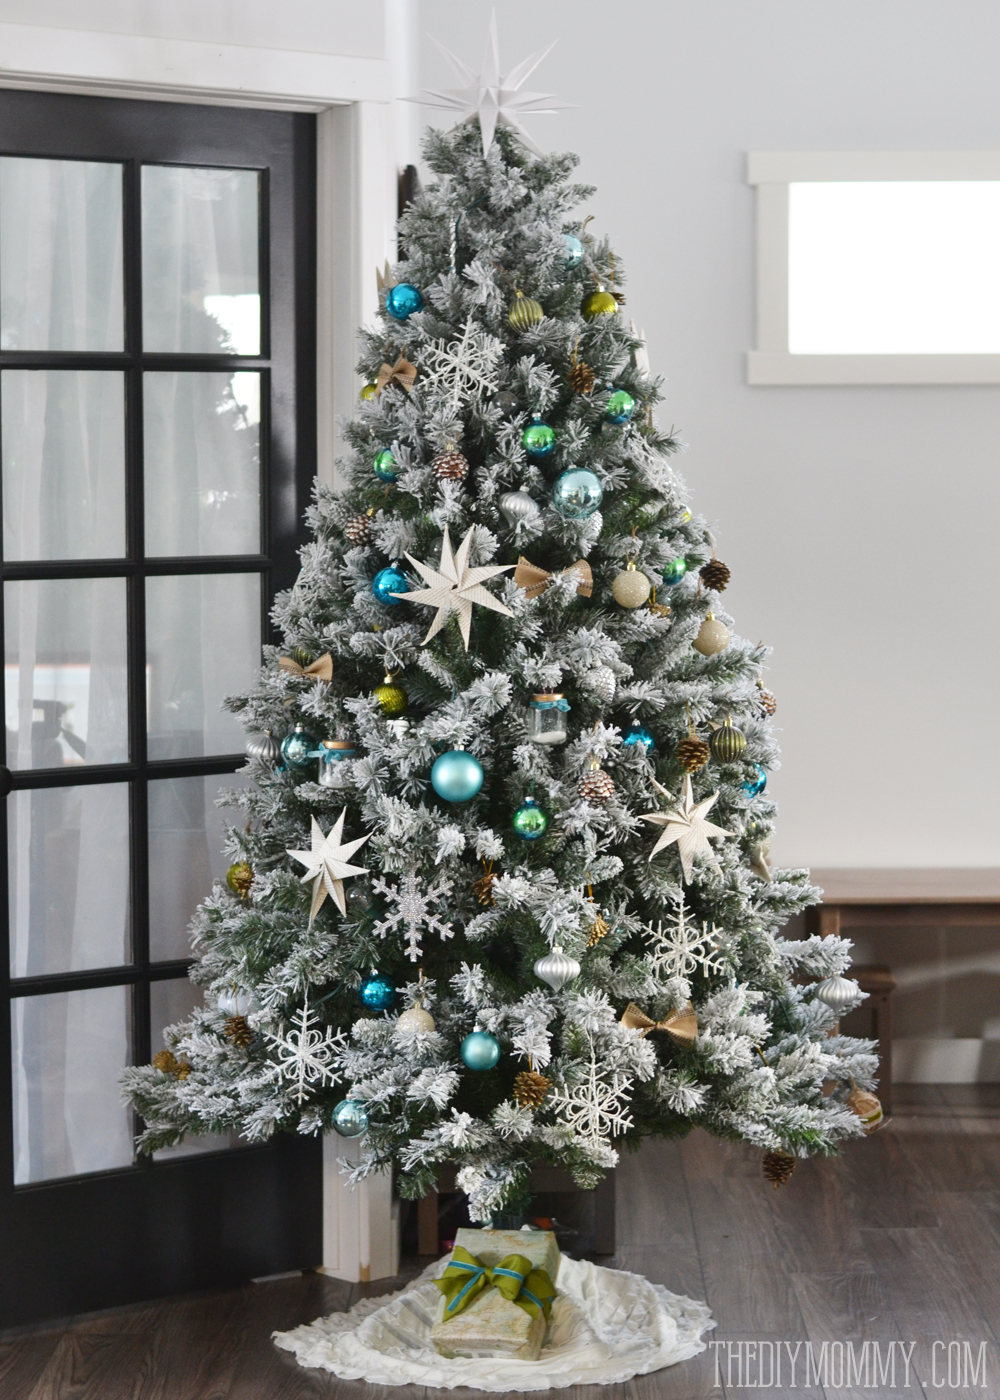 Our Teal, Green, Silver and White Vintage Inspired Flocked Christmas Tree | The DIY Mommy